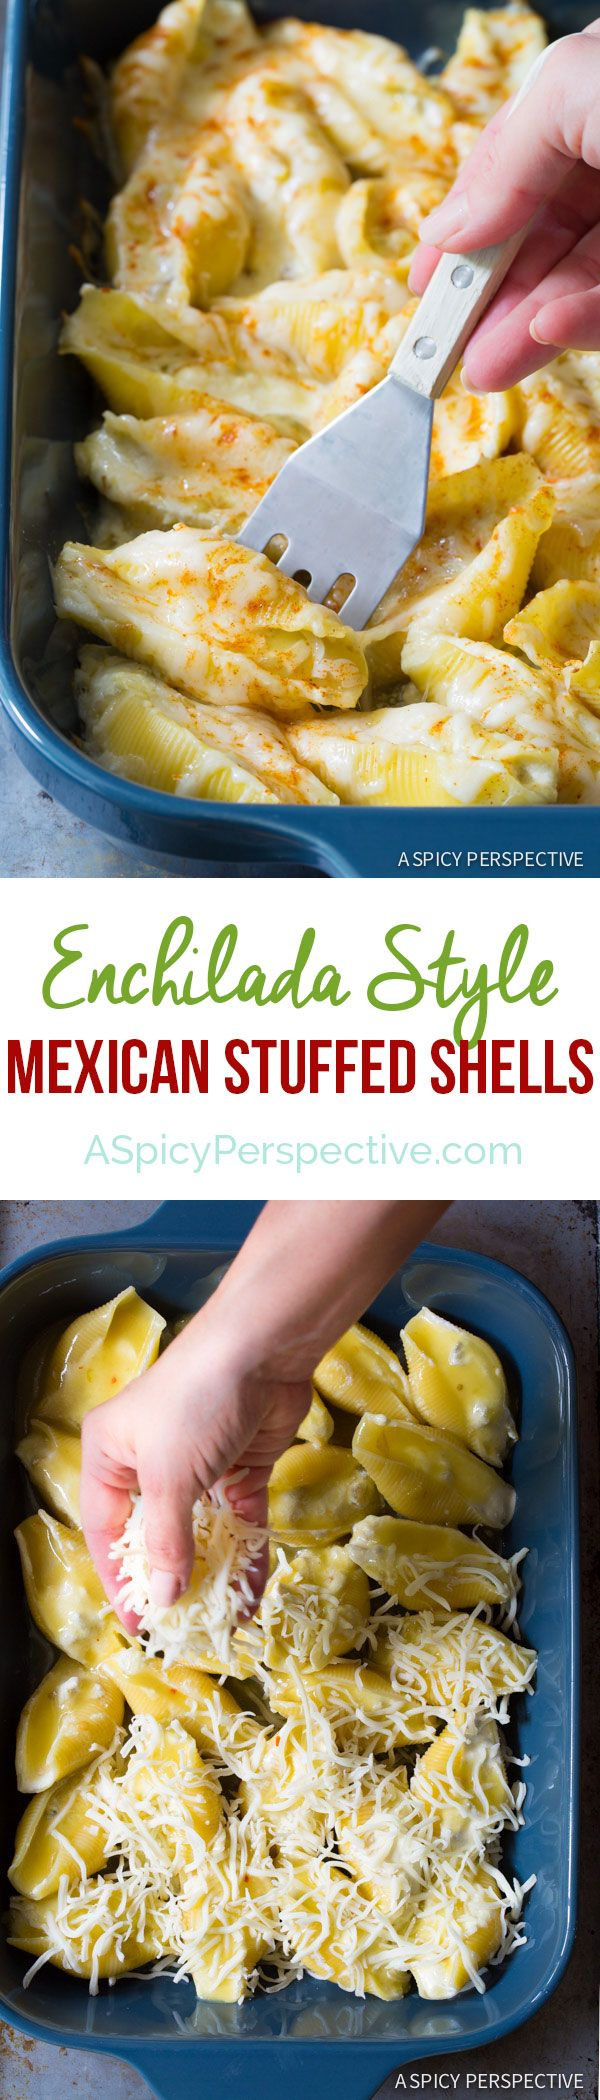 Creamy Enchilada-Style Mexican Stuffed Shells on ASpicyPerspective.com via @spicyperspectiv